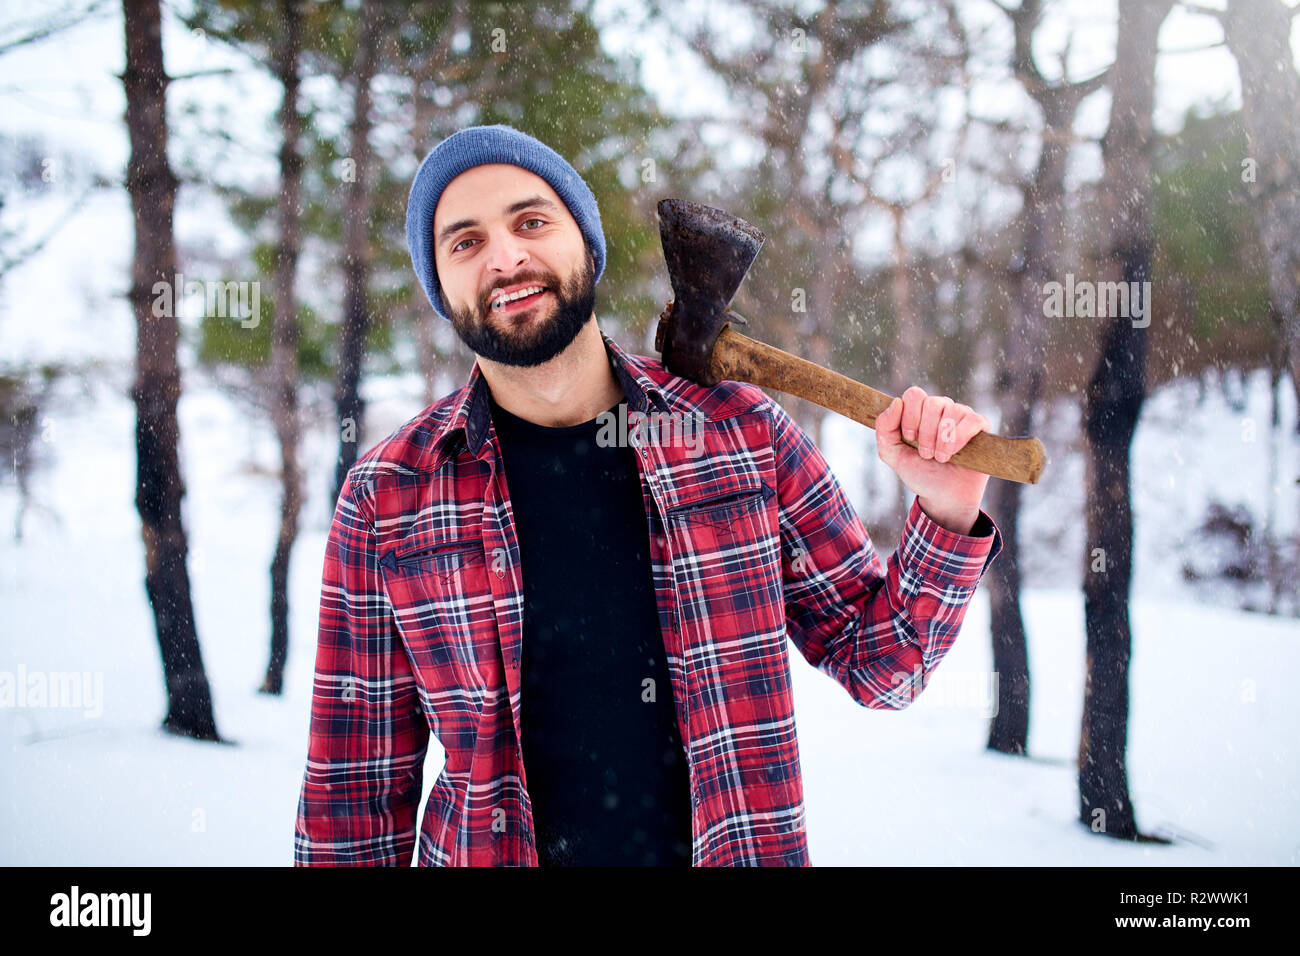 53fc12f52f1 Bearded hipster man in a winter snowy forest with axe on a shoulder.  Woodman standing